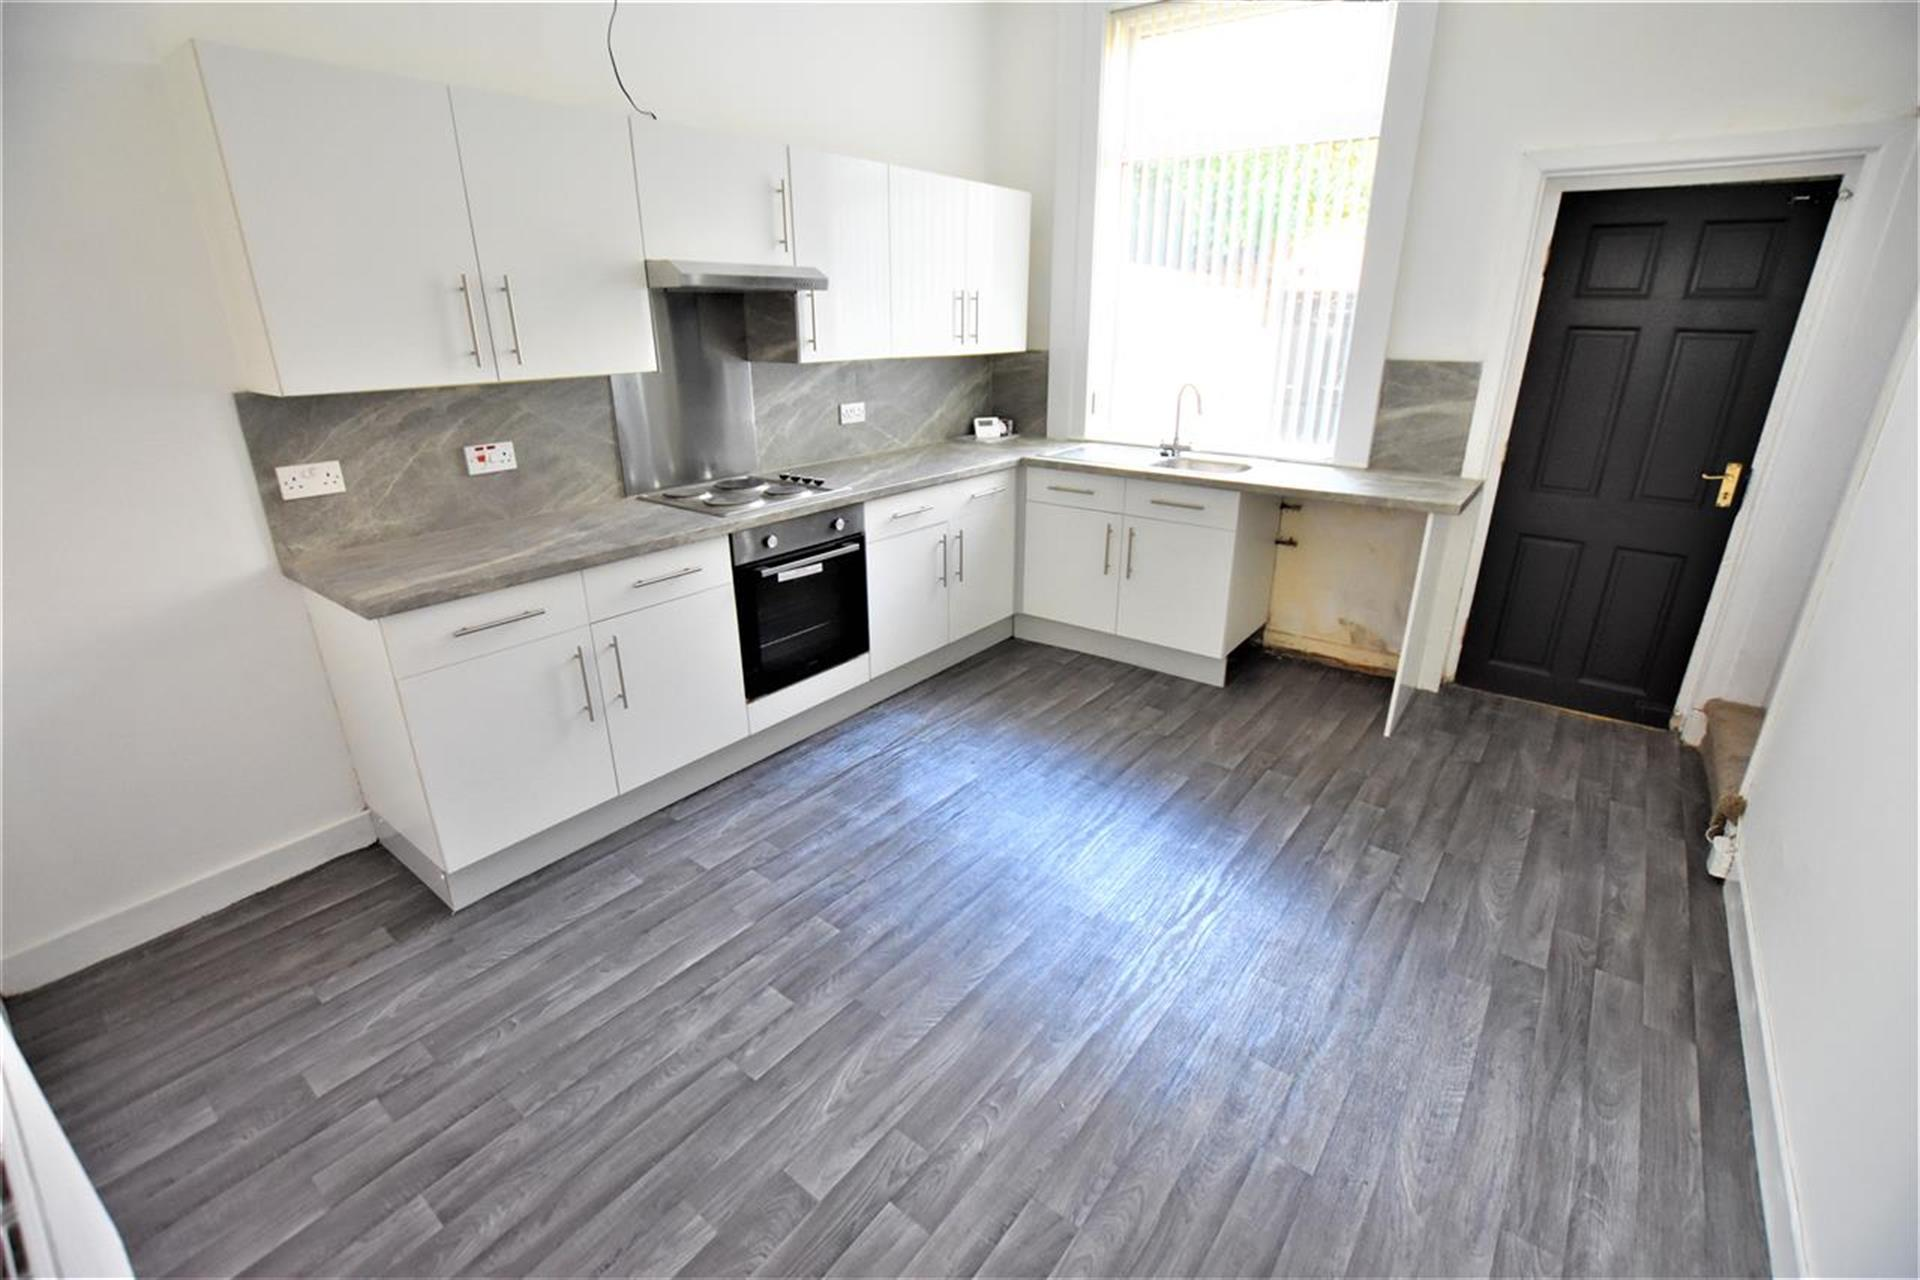 2 Bedroom End Terraced House For Sale - Kitchen/Dining Room